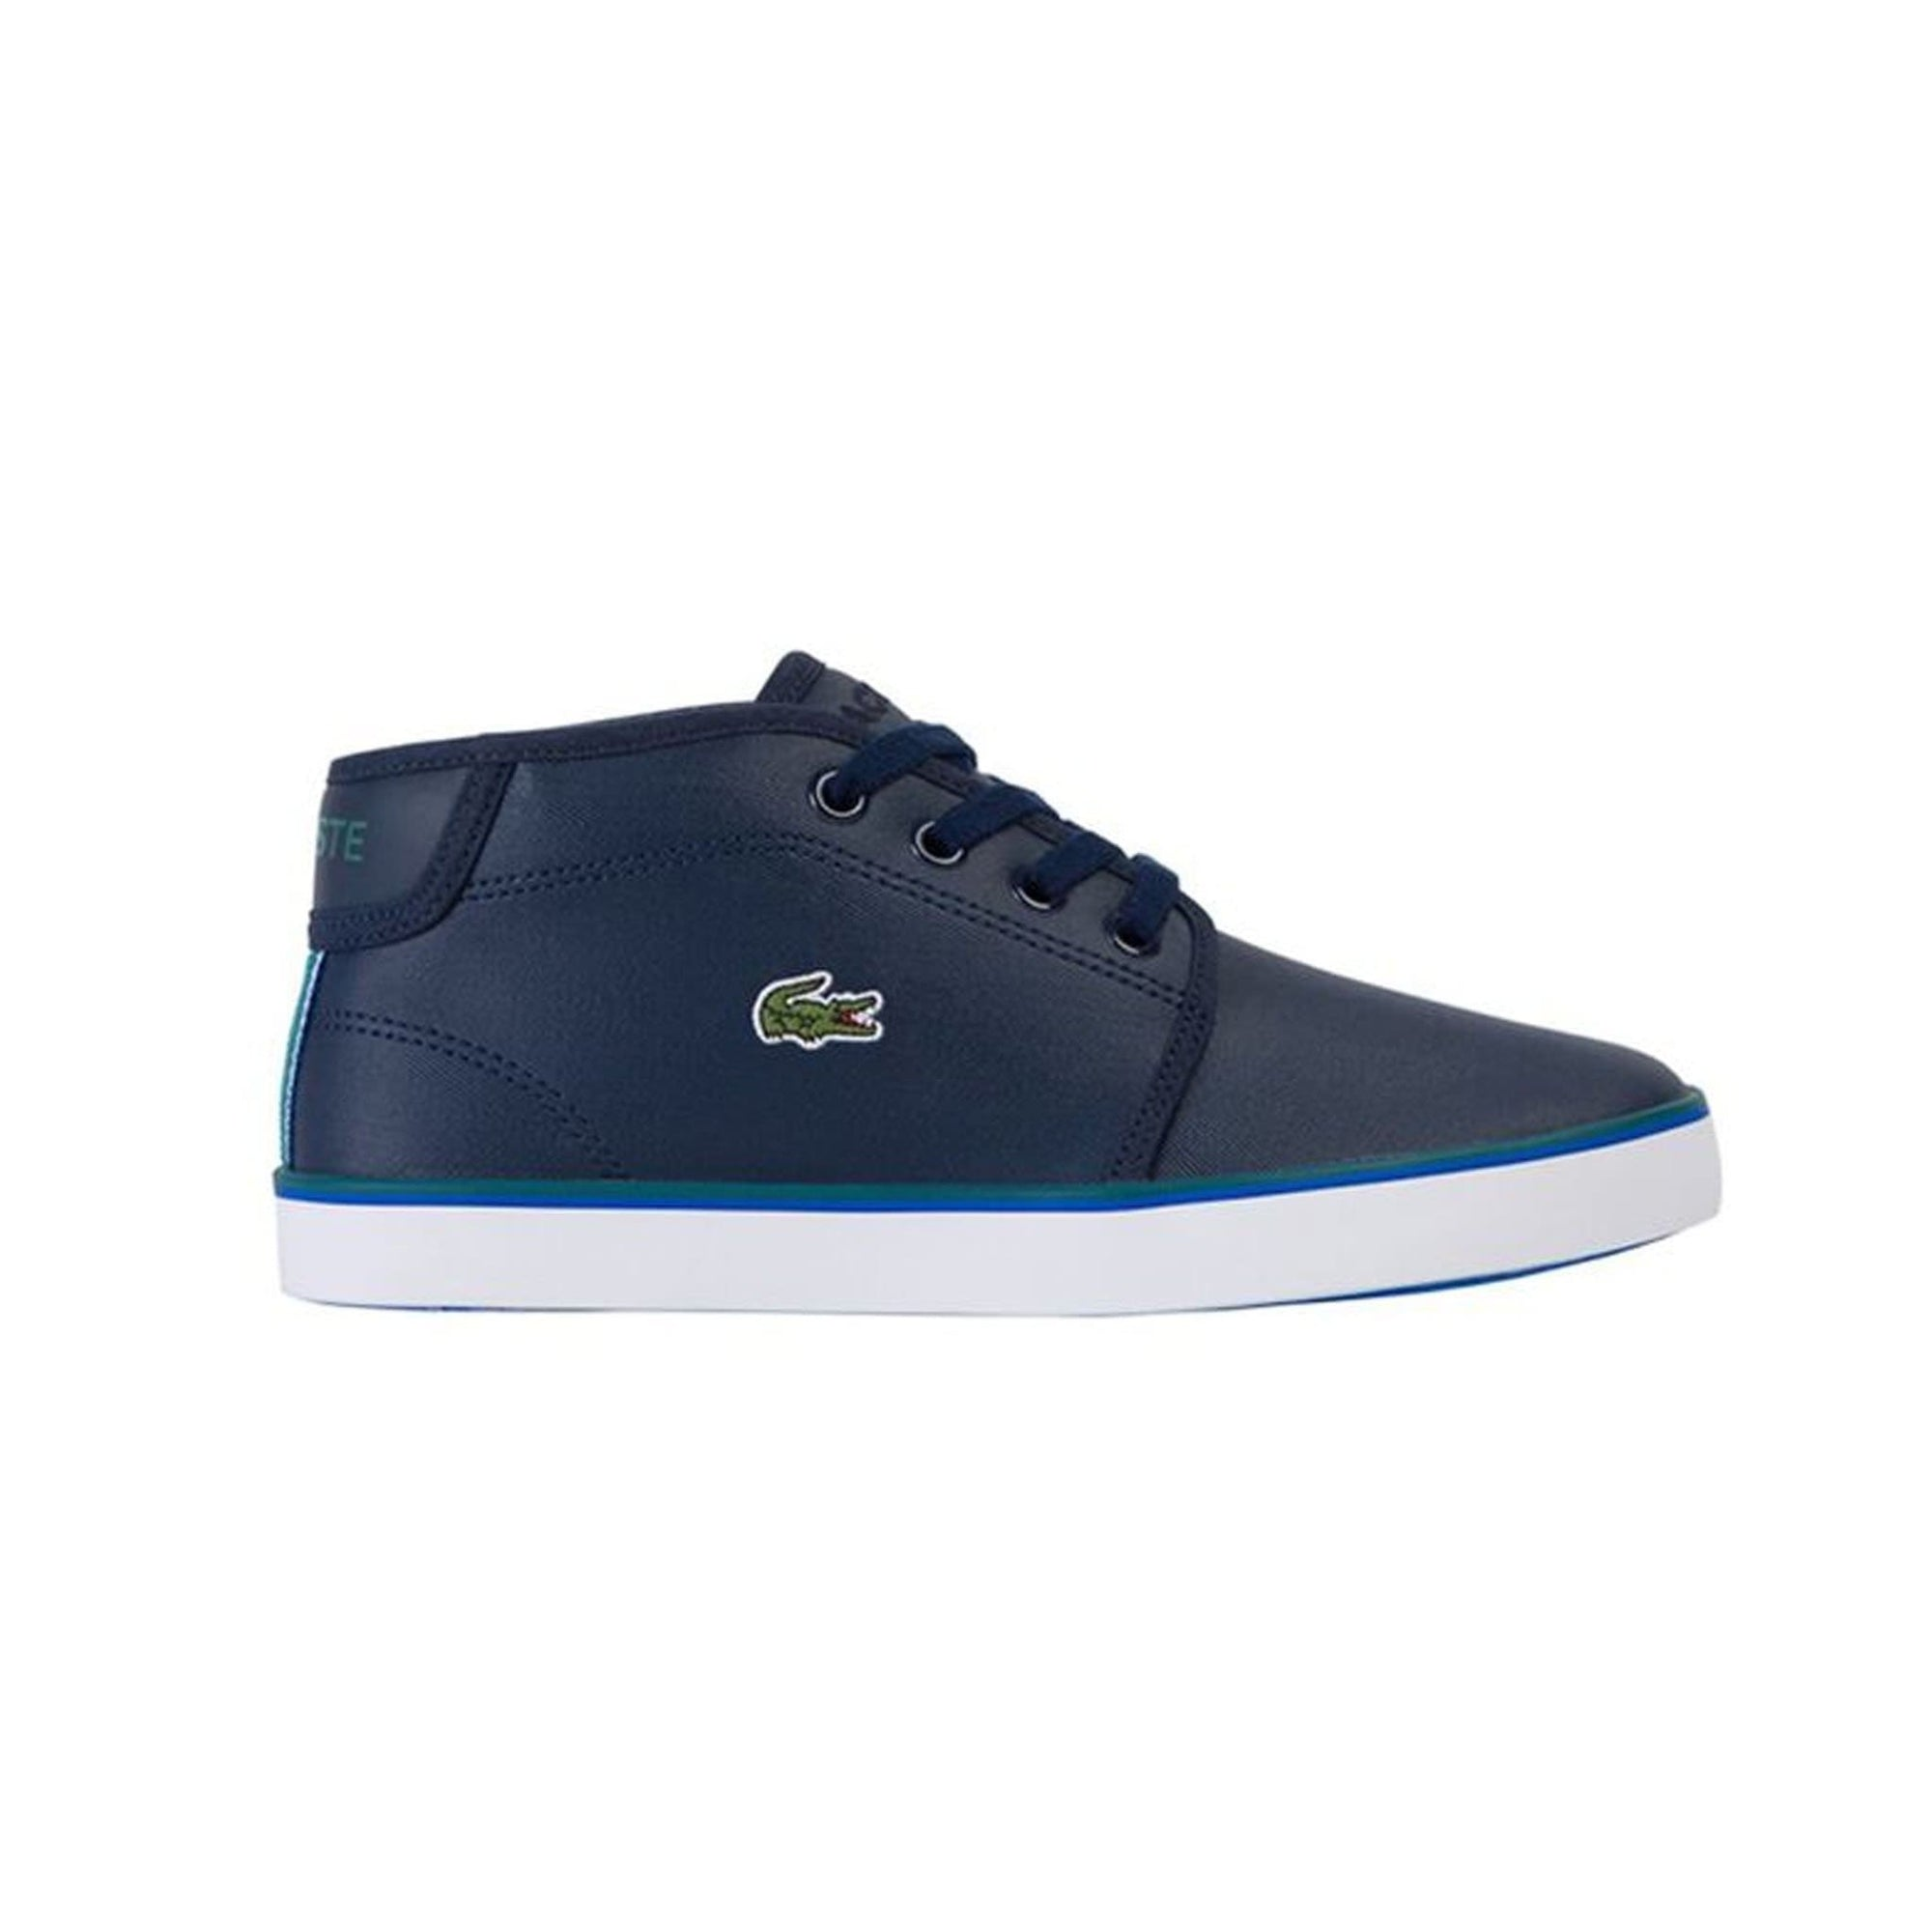 Lacoste Ampthill 120 1 Kids